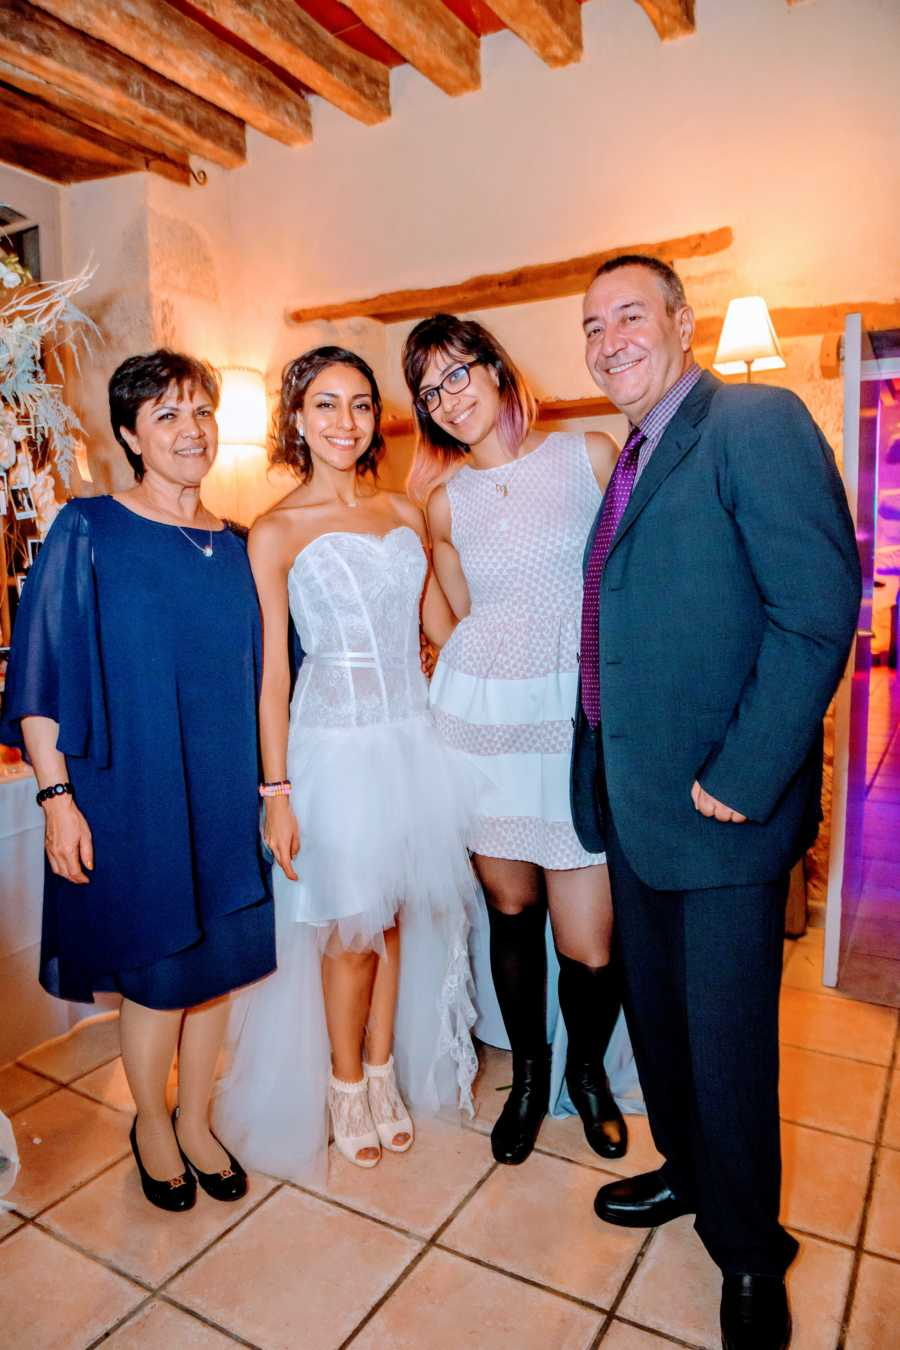 Woman takes a family photo with her parents and younger sister at her wedding reception